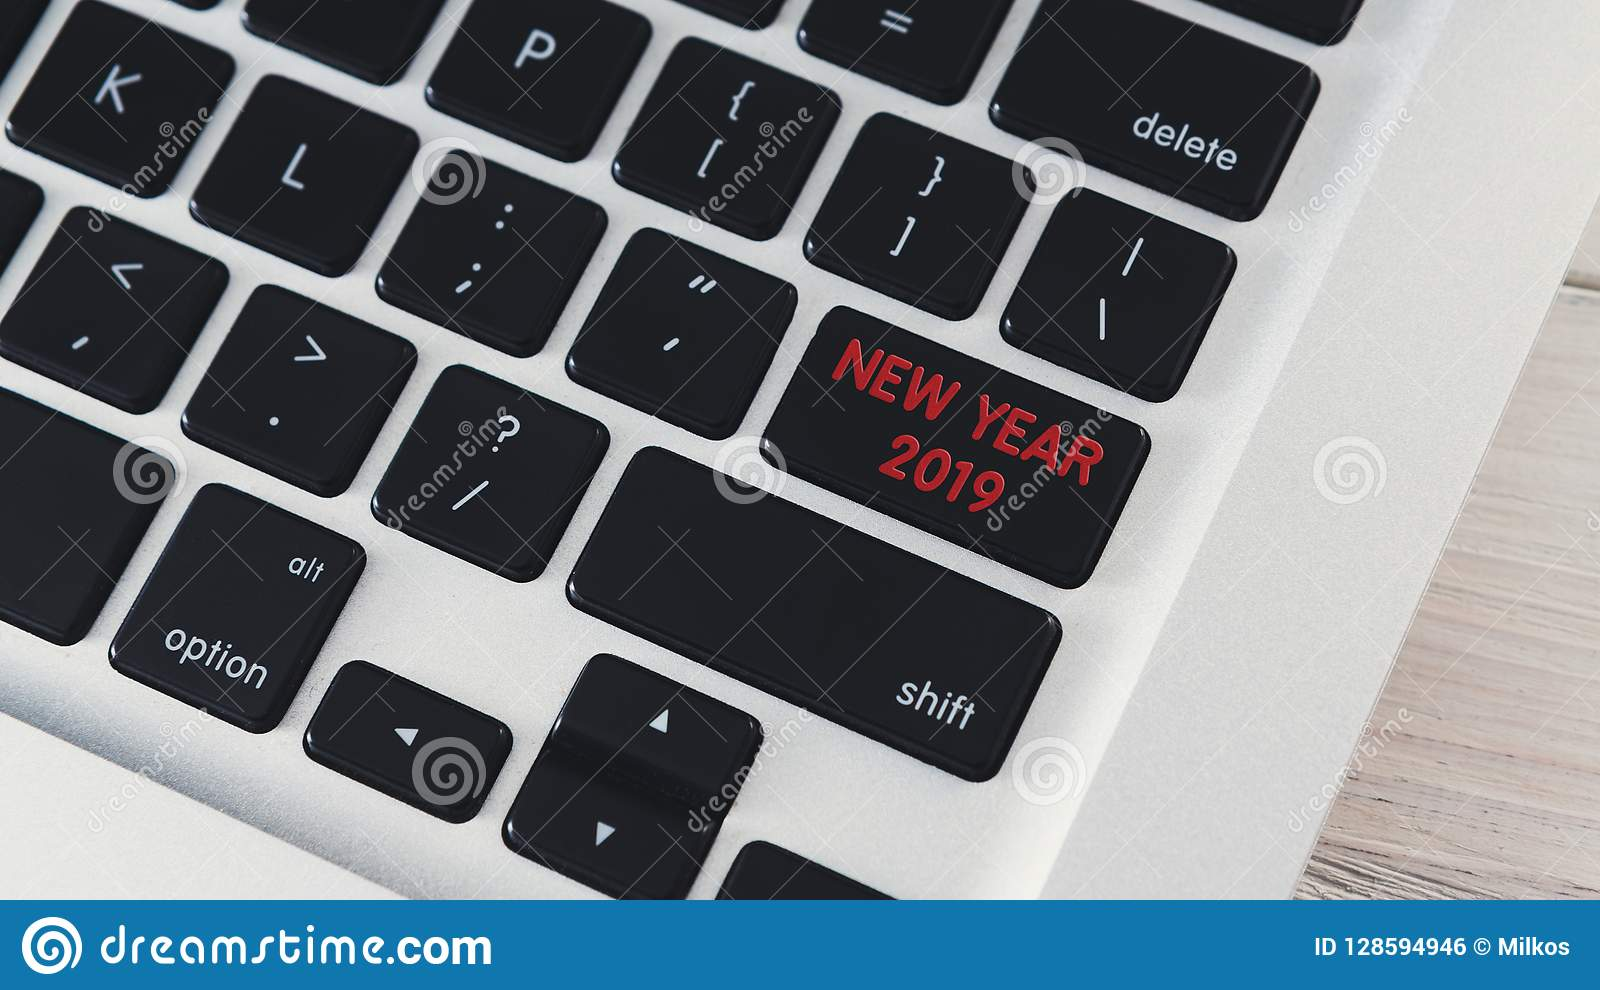 Computer Notebook Keyboard With New Year 2019 Key Stock